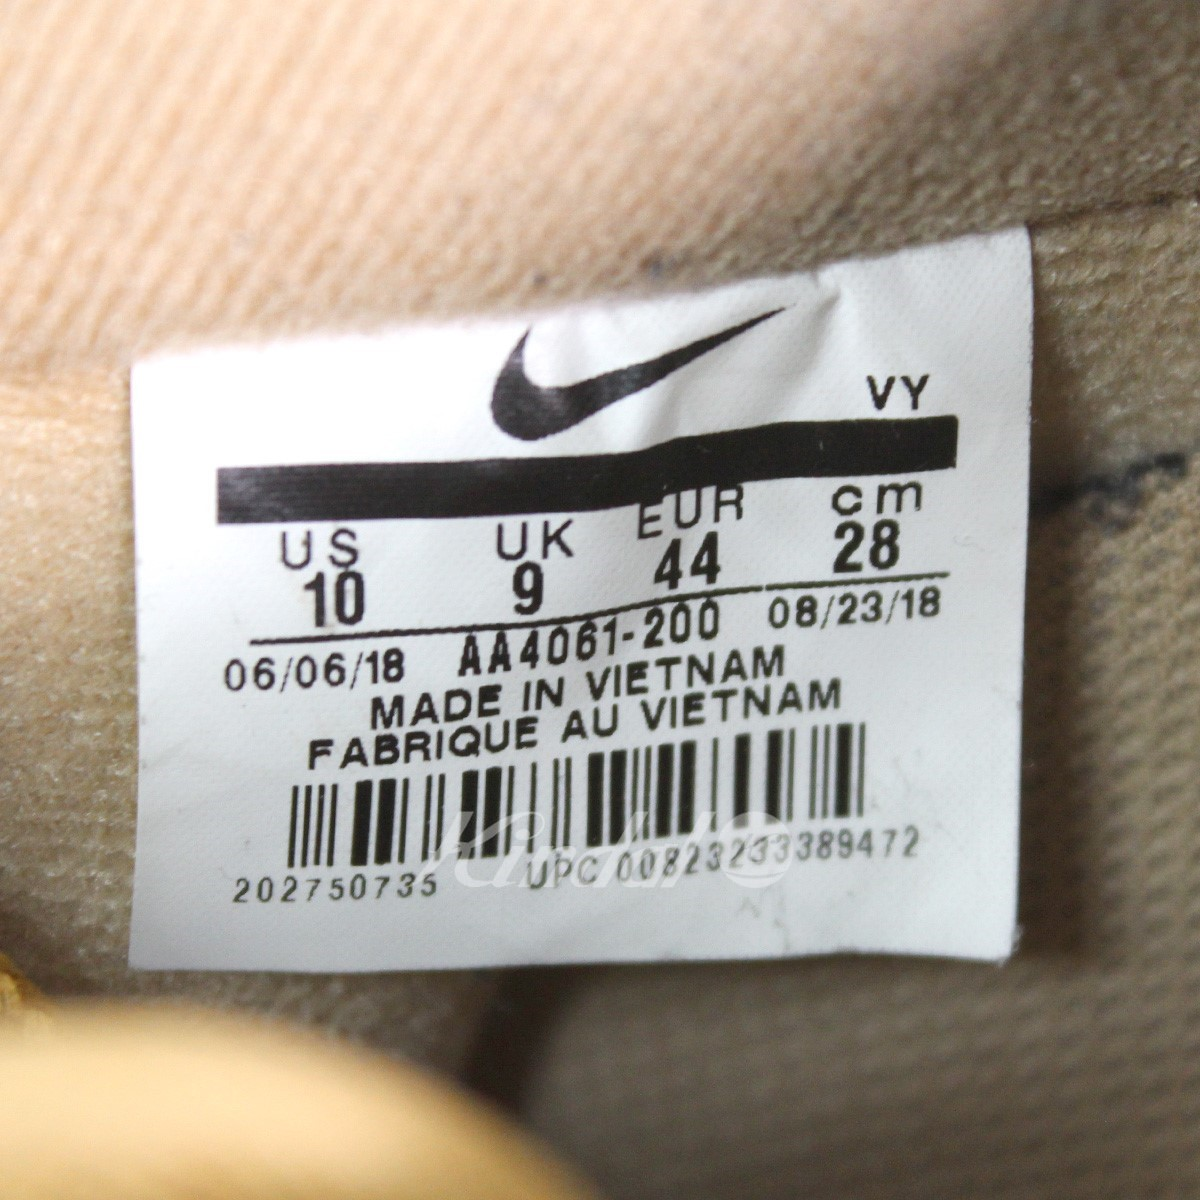 NIKE AIR FORCE 1 LOW 07 WB air force 1 low frequency cut sneakers brown size: 28 0cm (Nike)